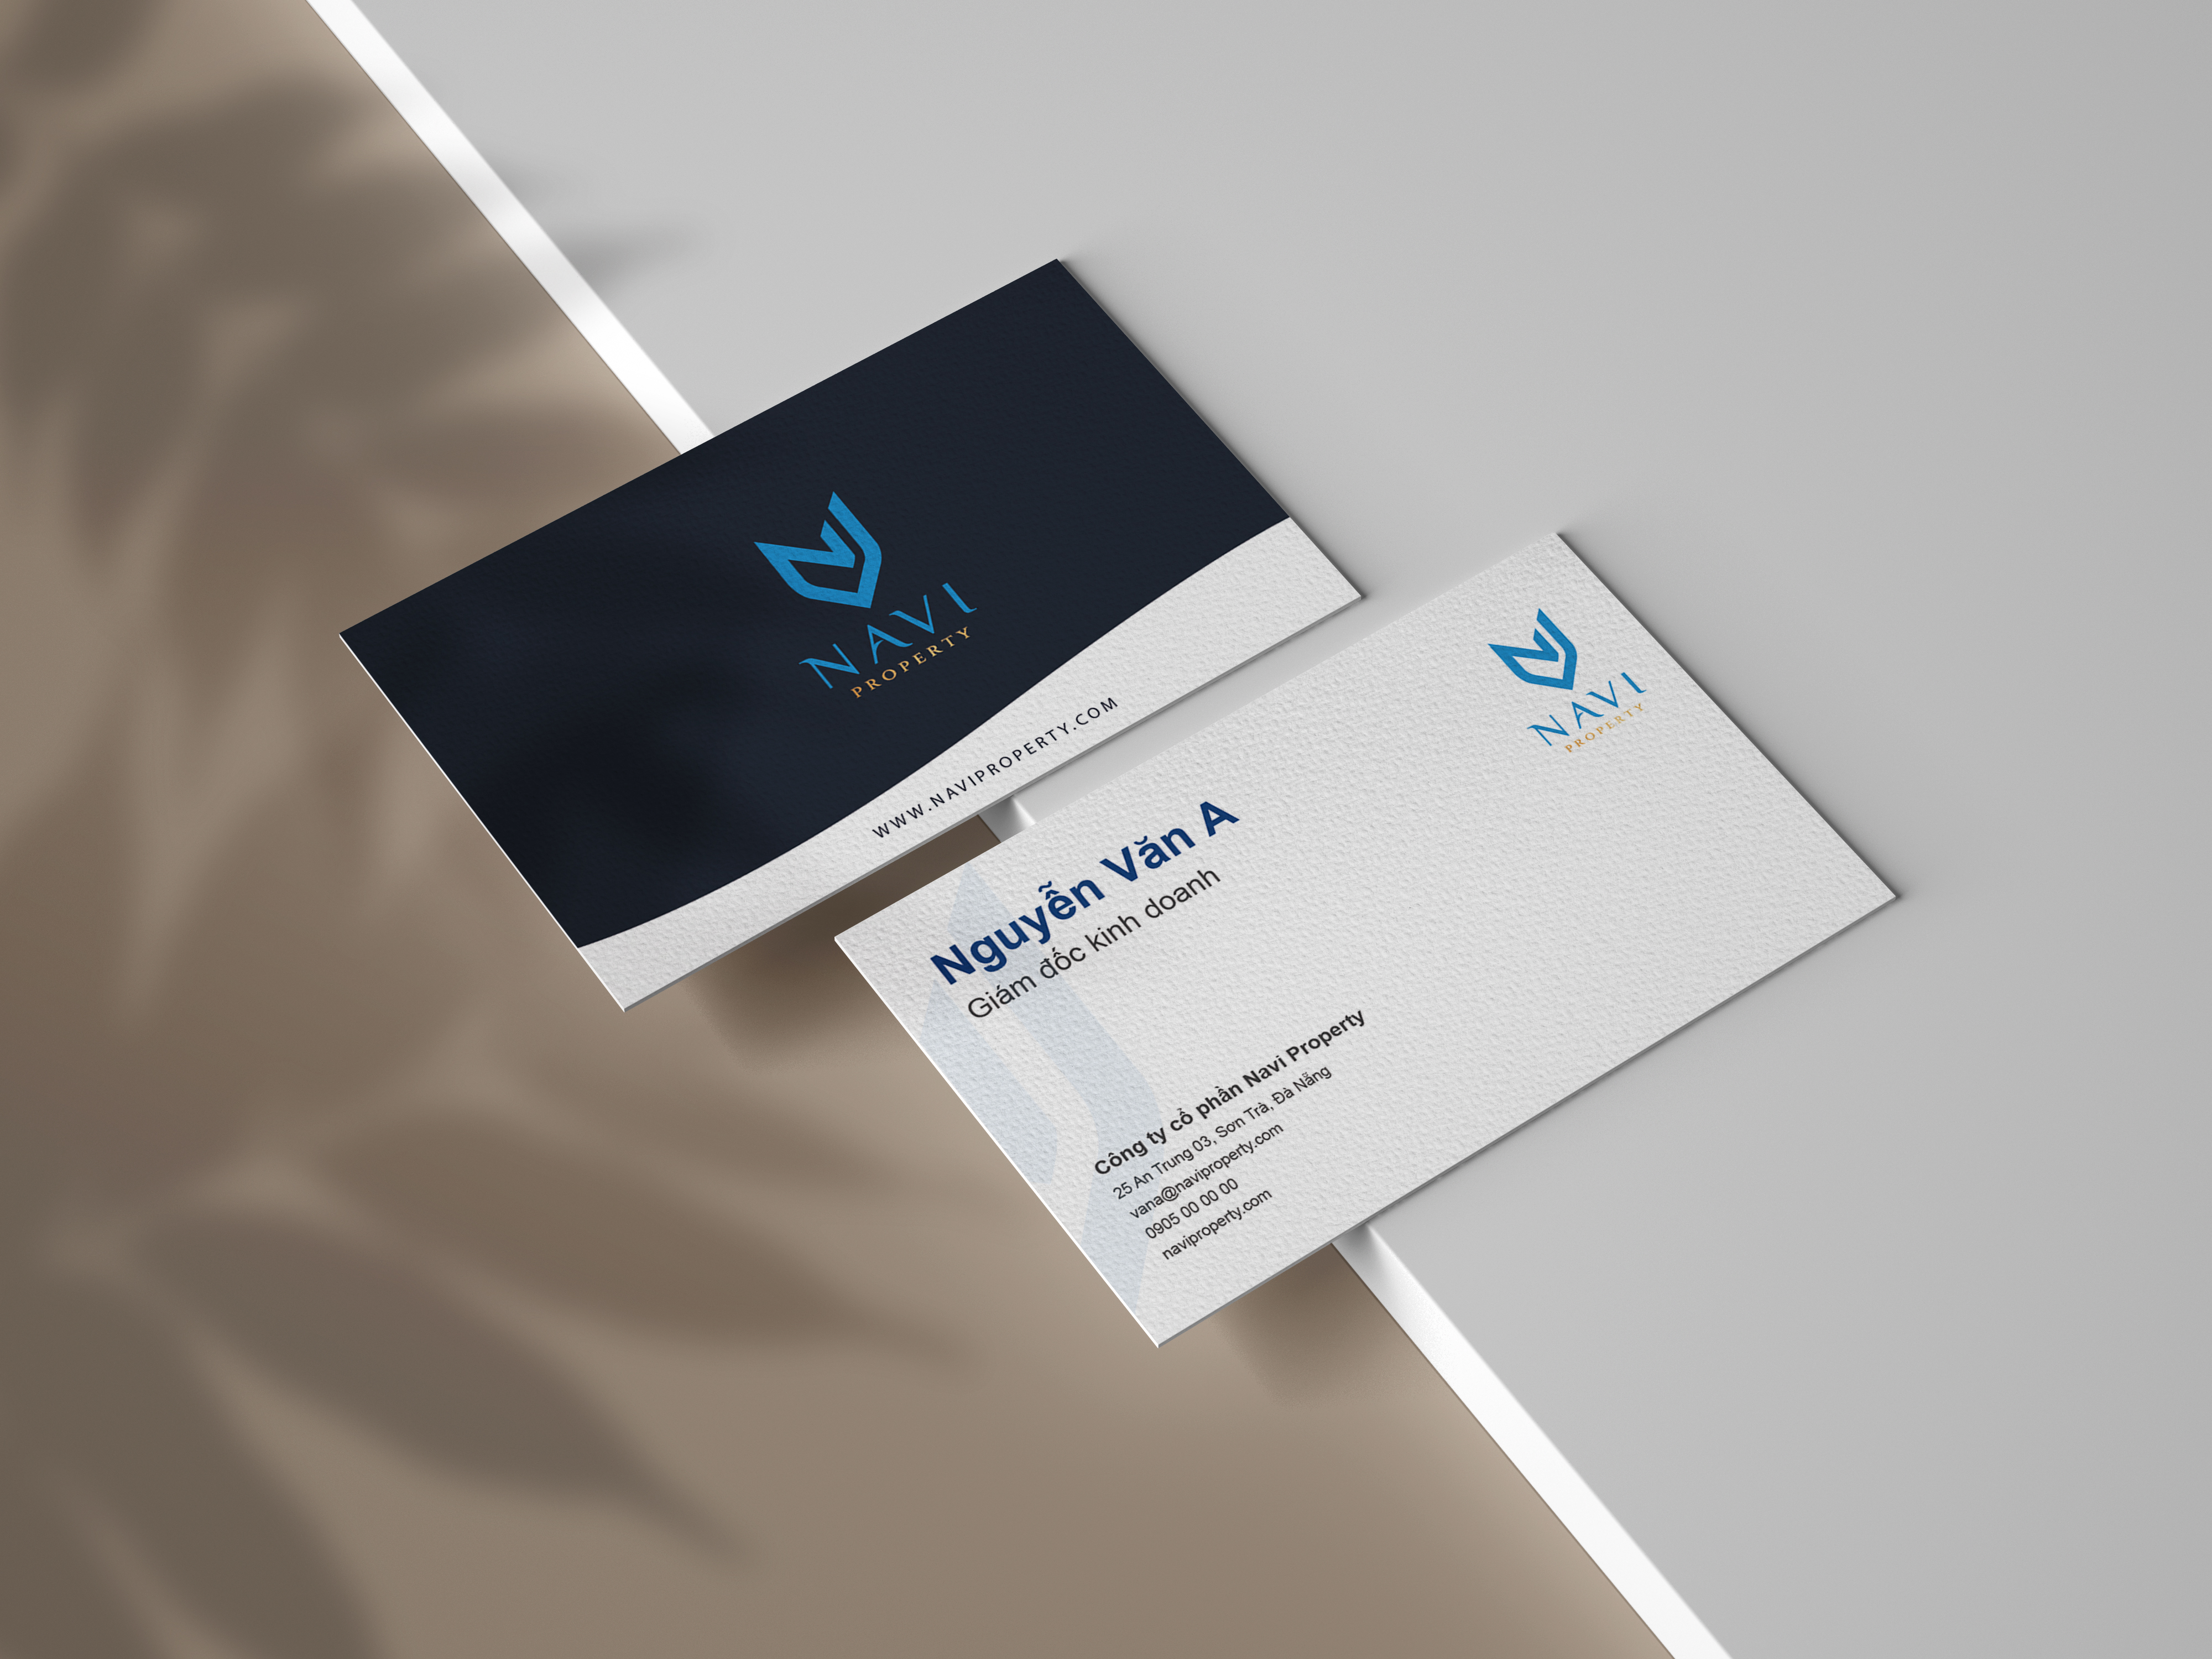 I will design clean minimal business card in one day